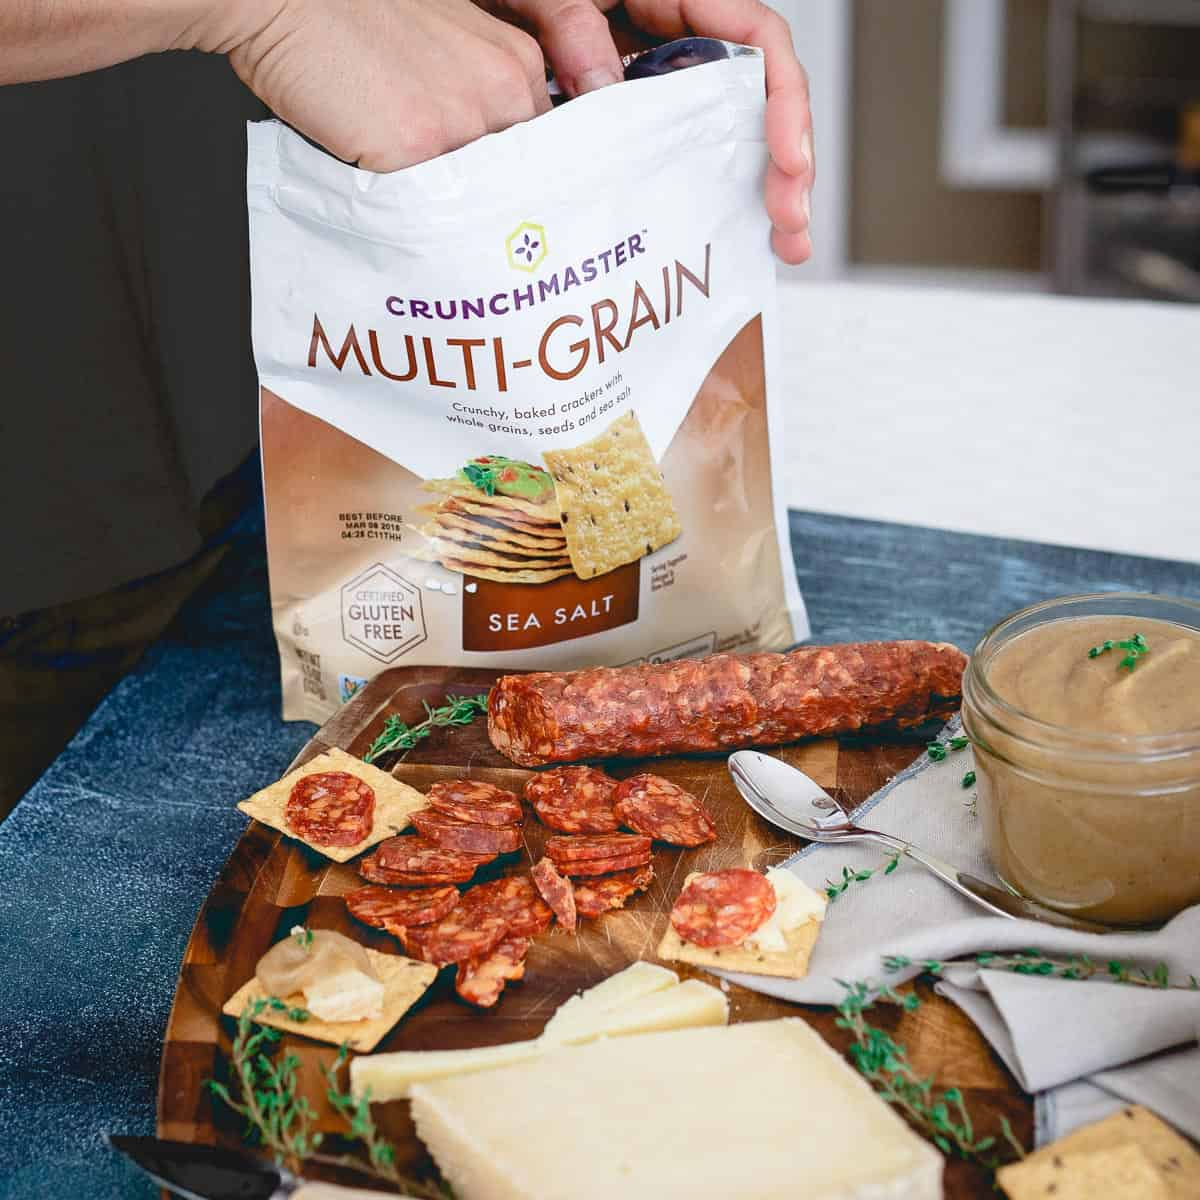 Crunchmaster multi-grain crackers are the perfect addition to a cheese, charcuterie and pear apple butter spread.